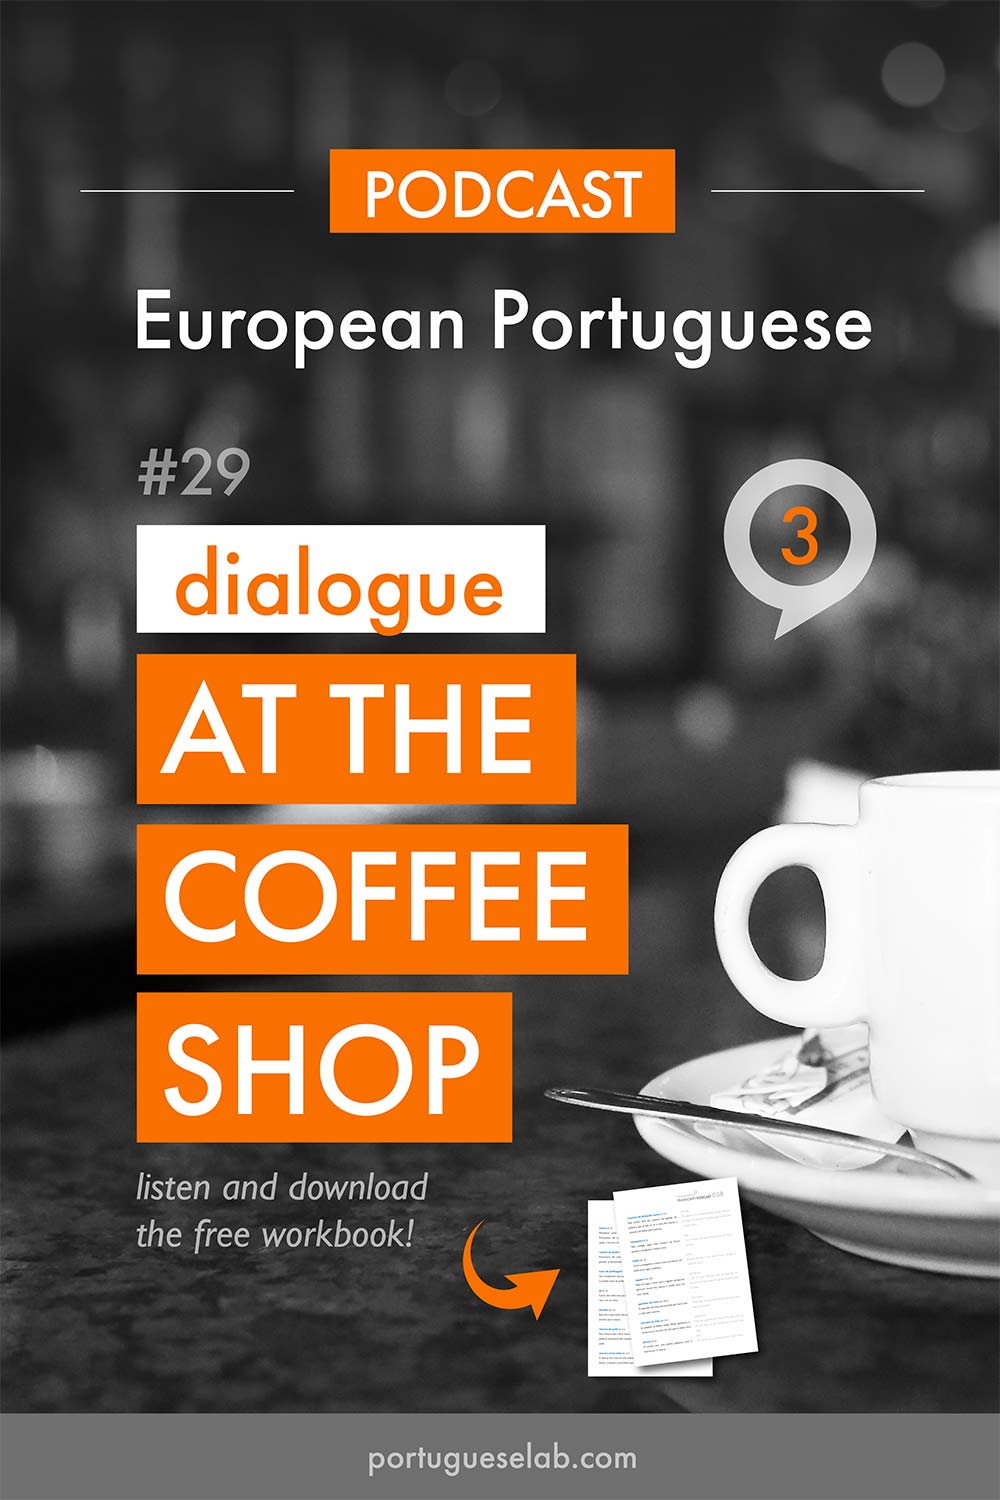 Portuguese-Lab-Podcast-European-Portuguese-29-At-the-coffee-shop-dialogue-1.jpg